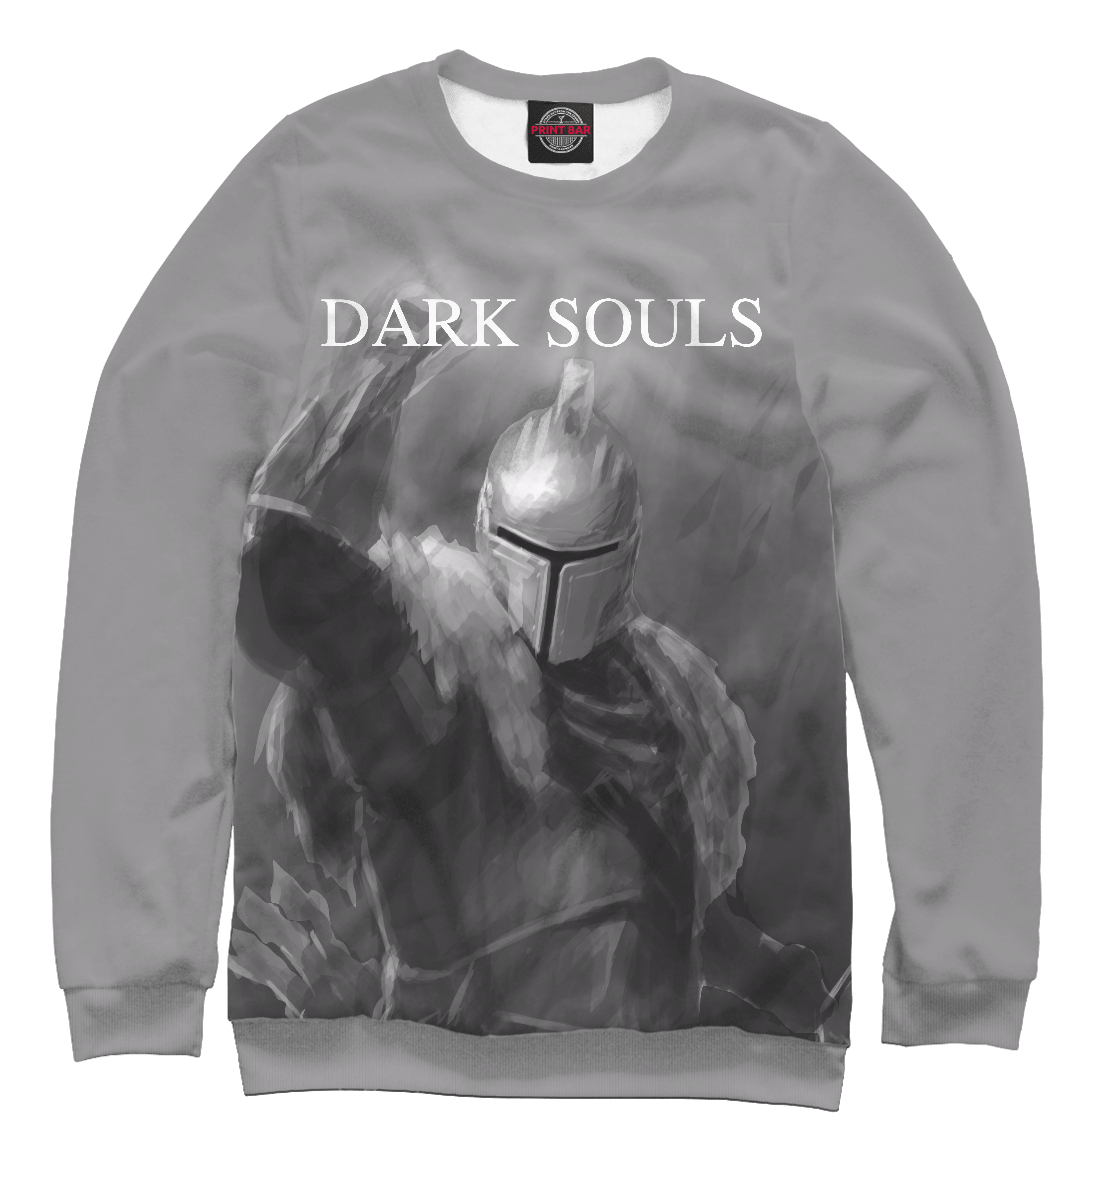 Купить Dark Souls, Printbar, Свитшоты, DKS-619151-swi-2